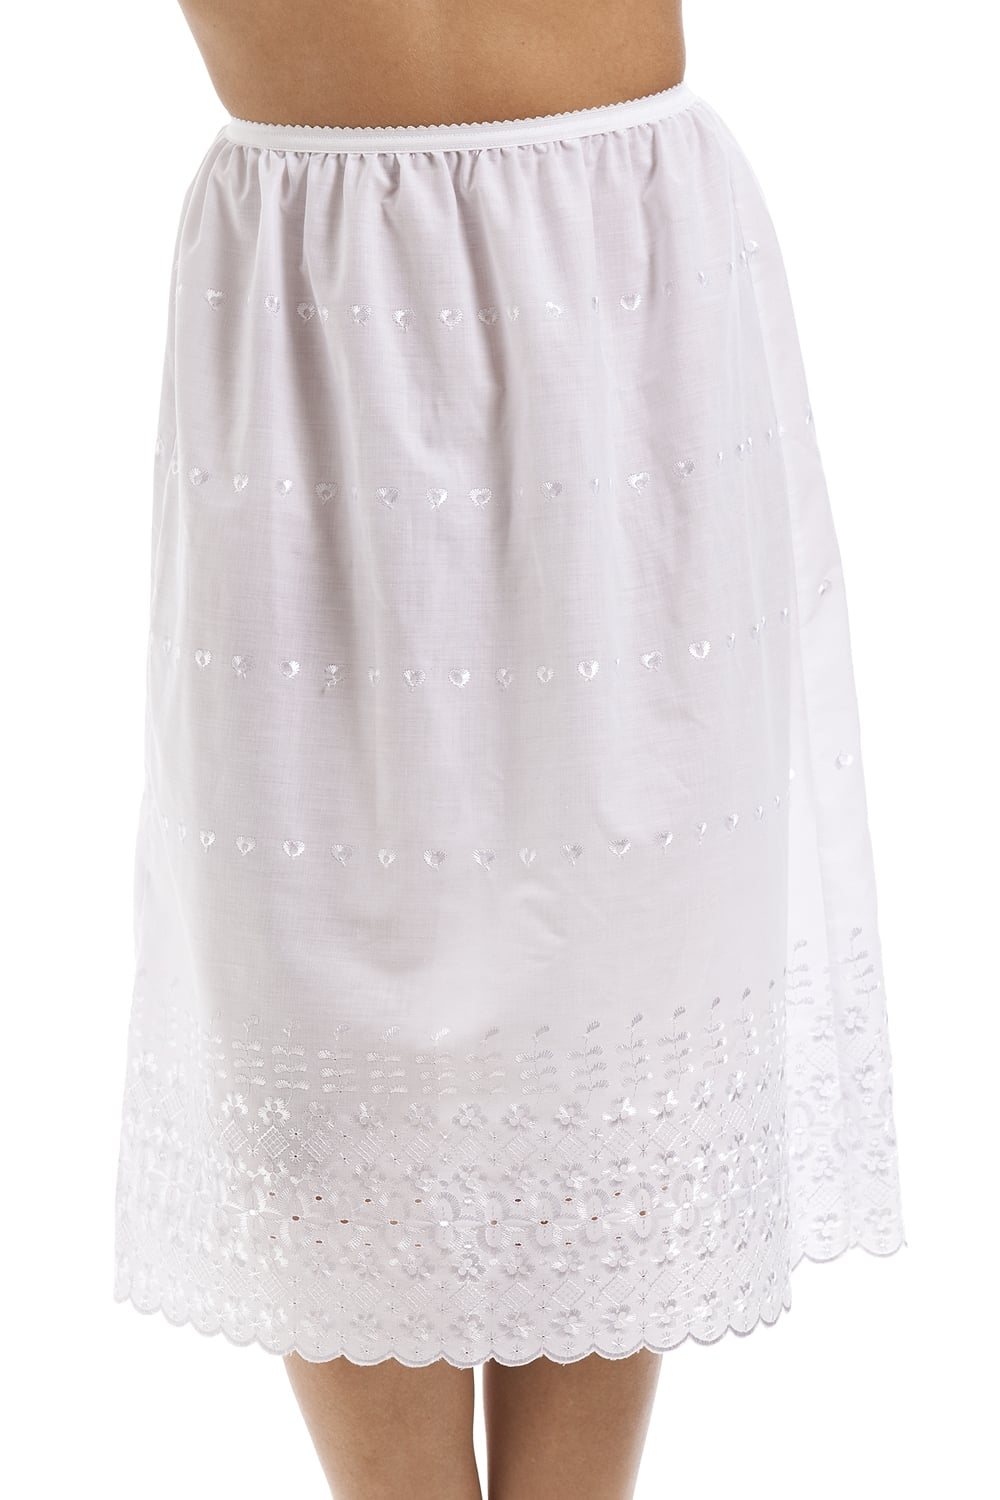 Camille Classic White Embroidered 26'' Half Length Lace Trim